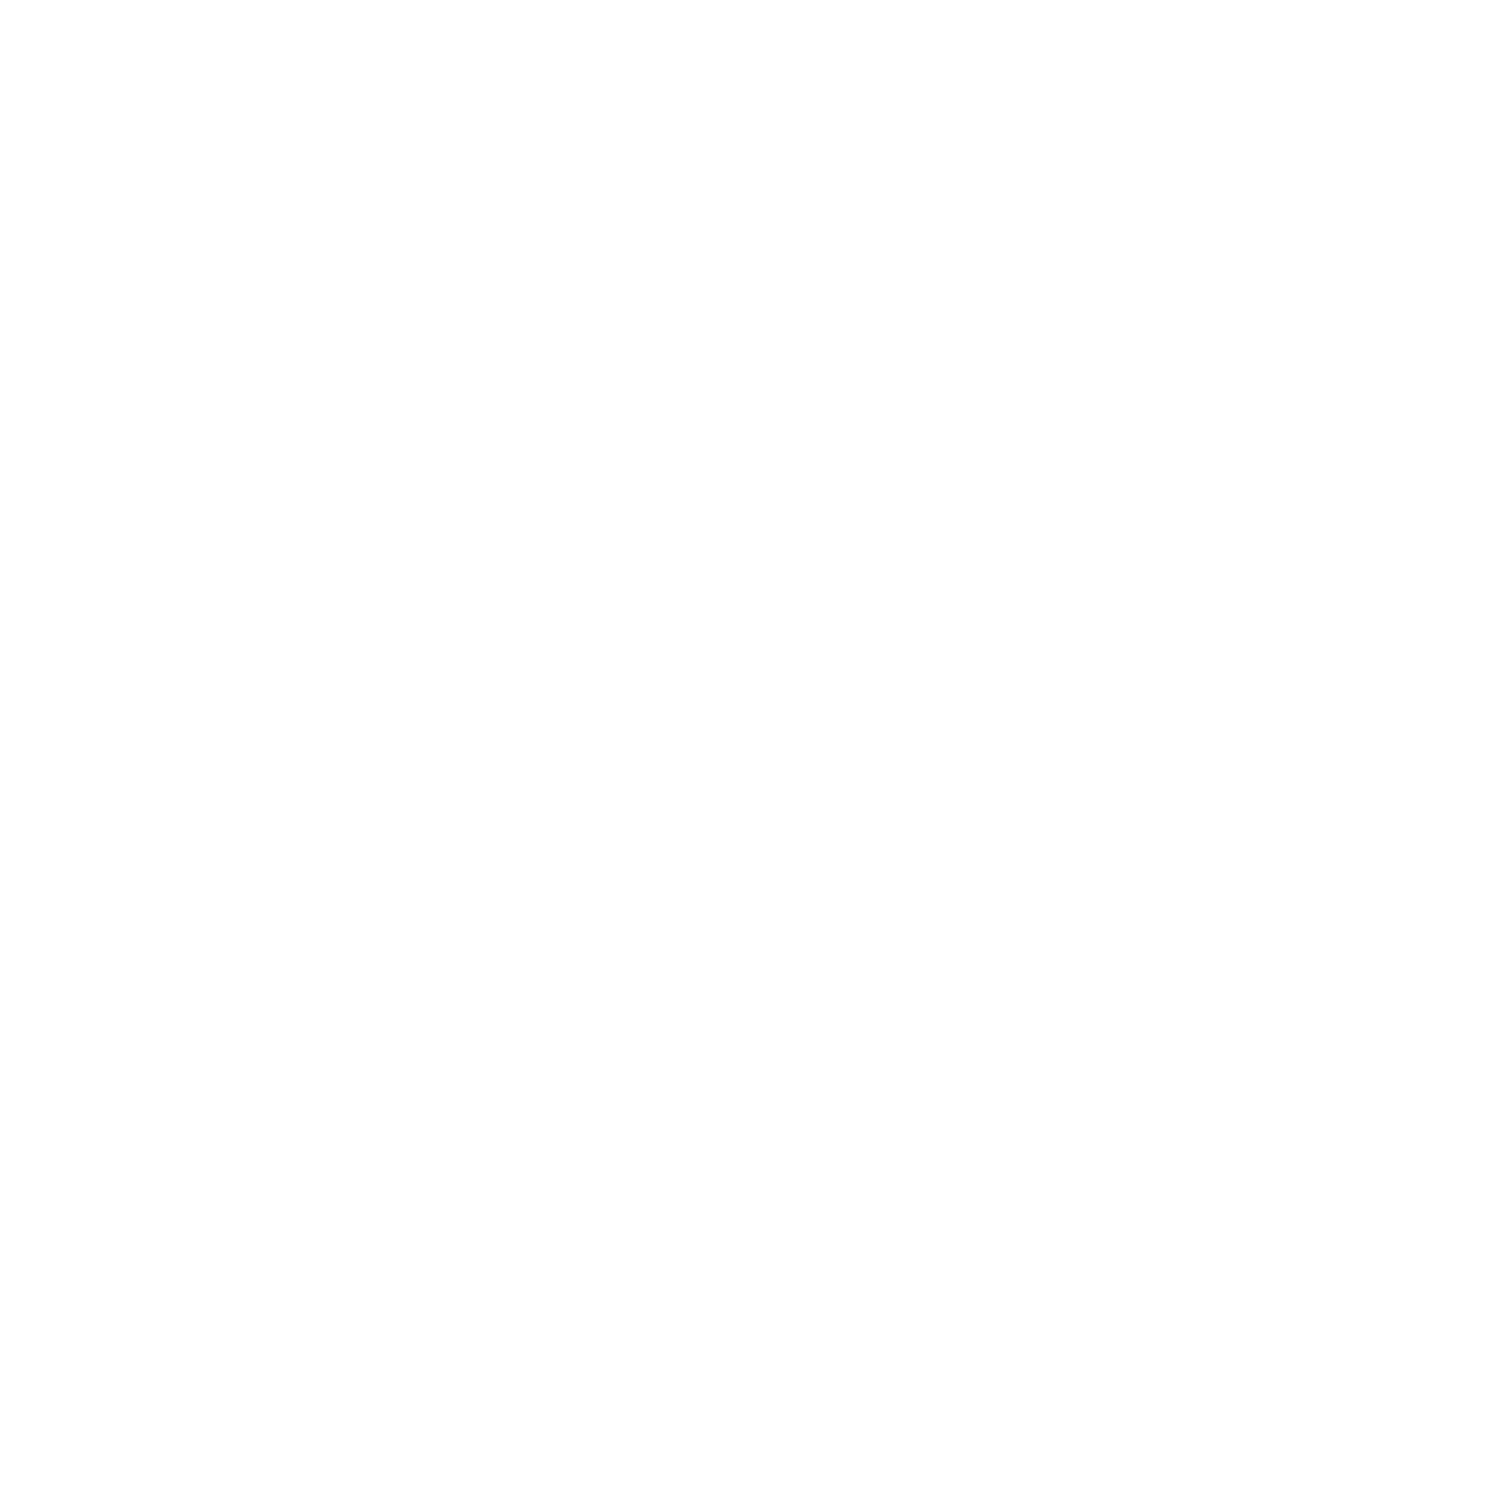 The Blog of Latin Music Score